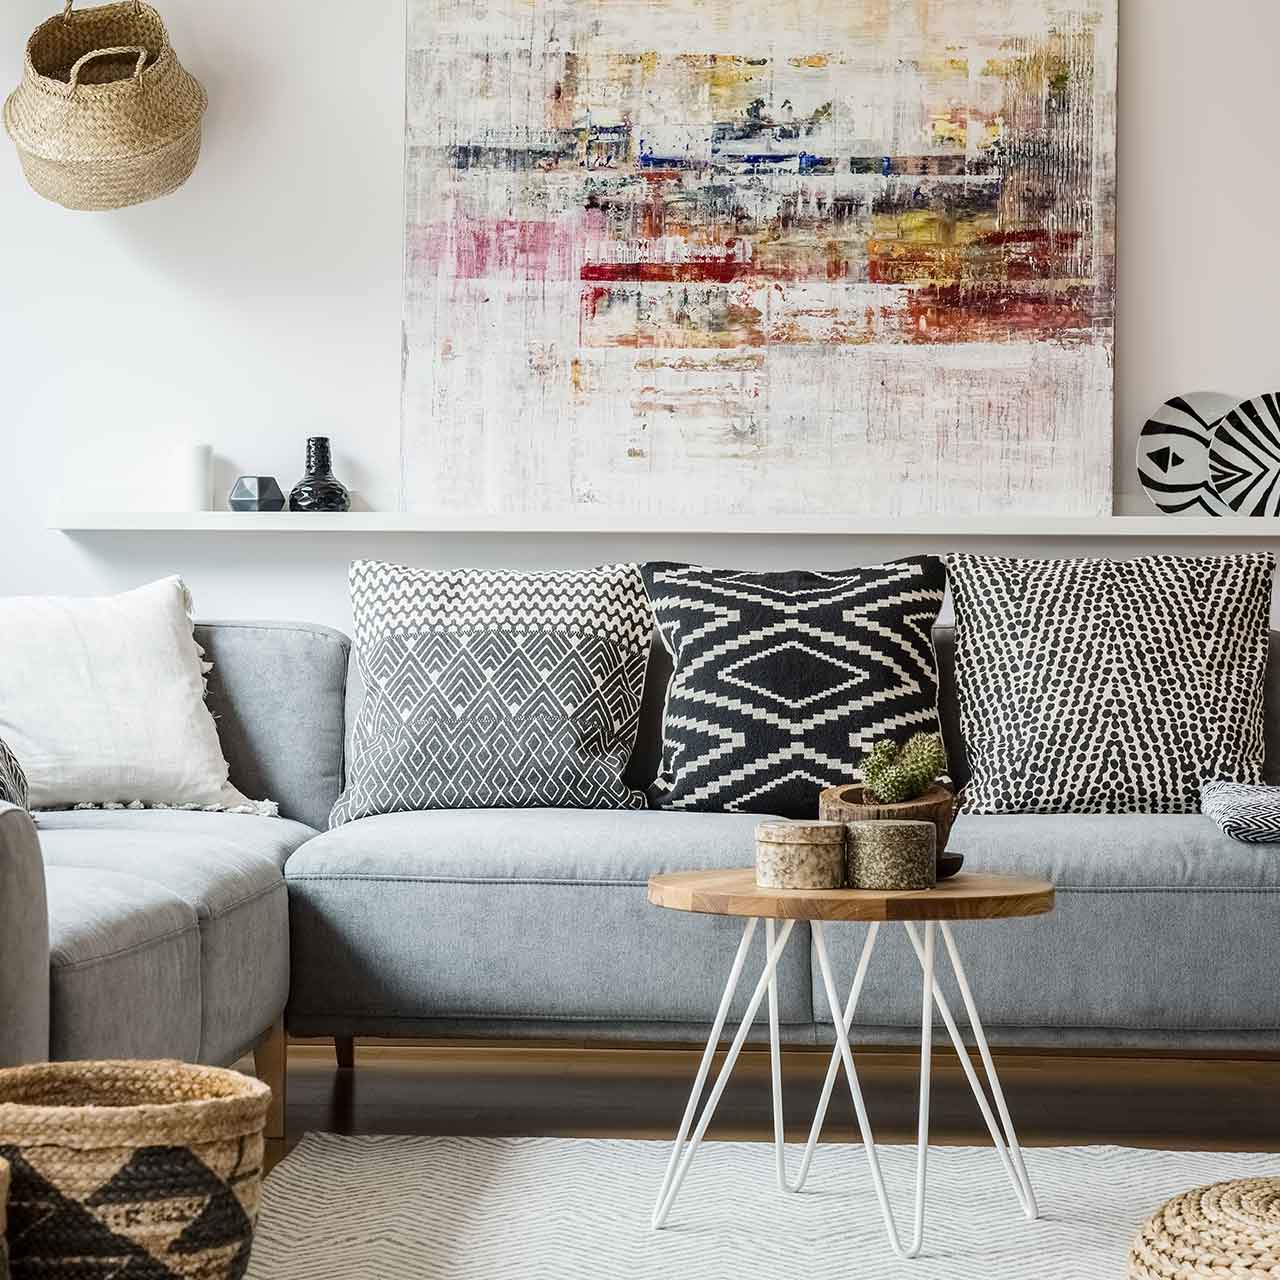 Rustic style living room interiors are romantic with vintage charm